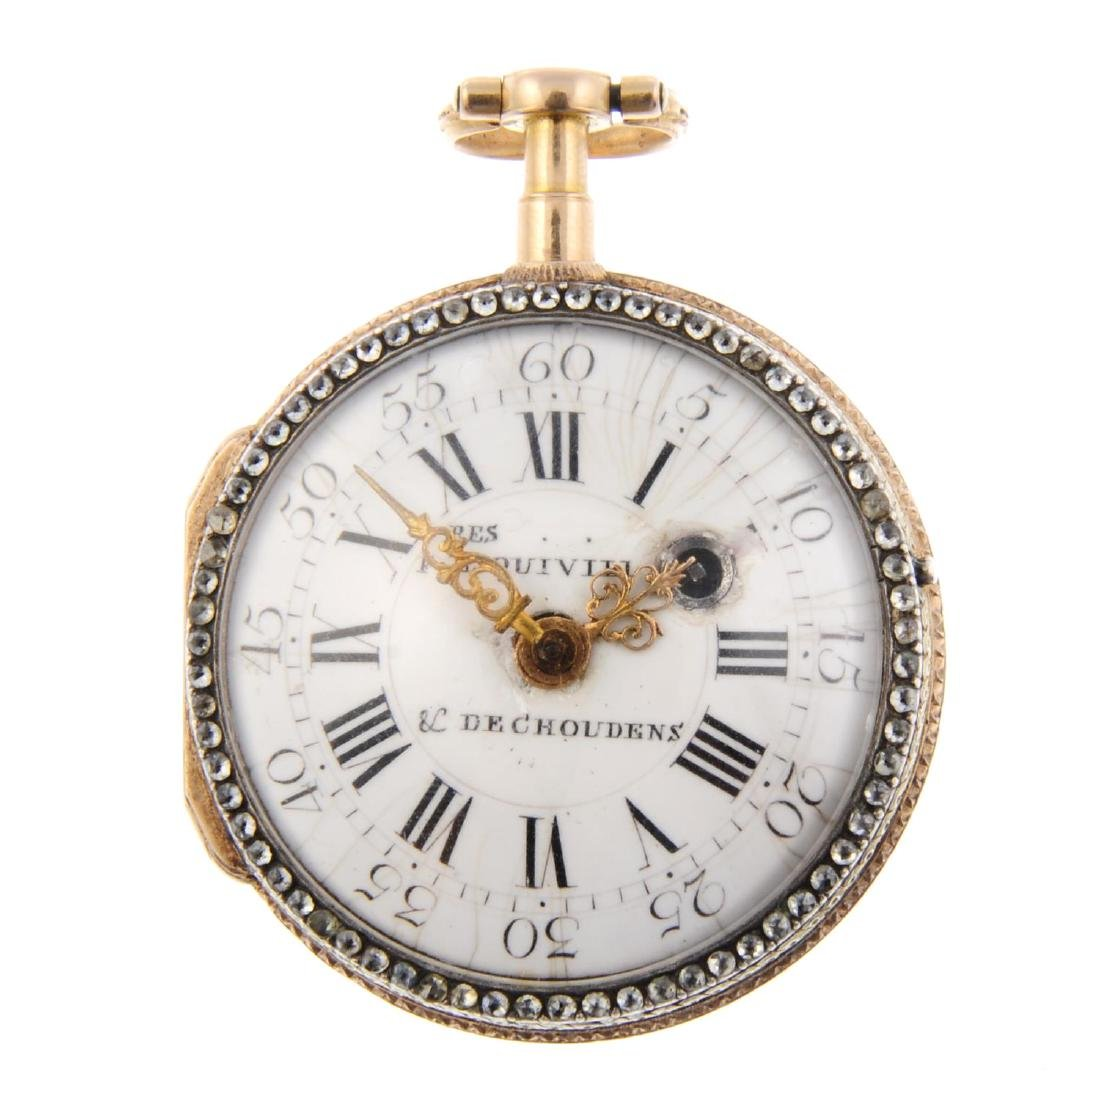 An open face pocket watch by Les Frères Esquivillon &